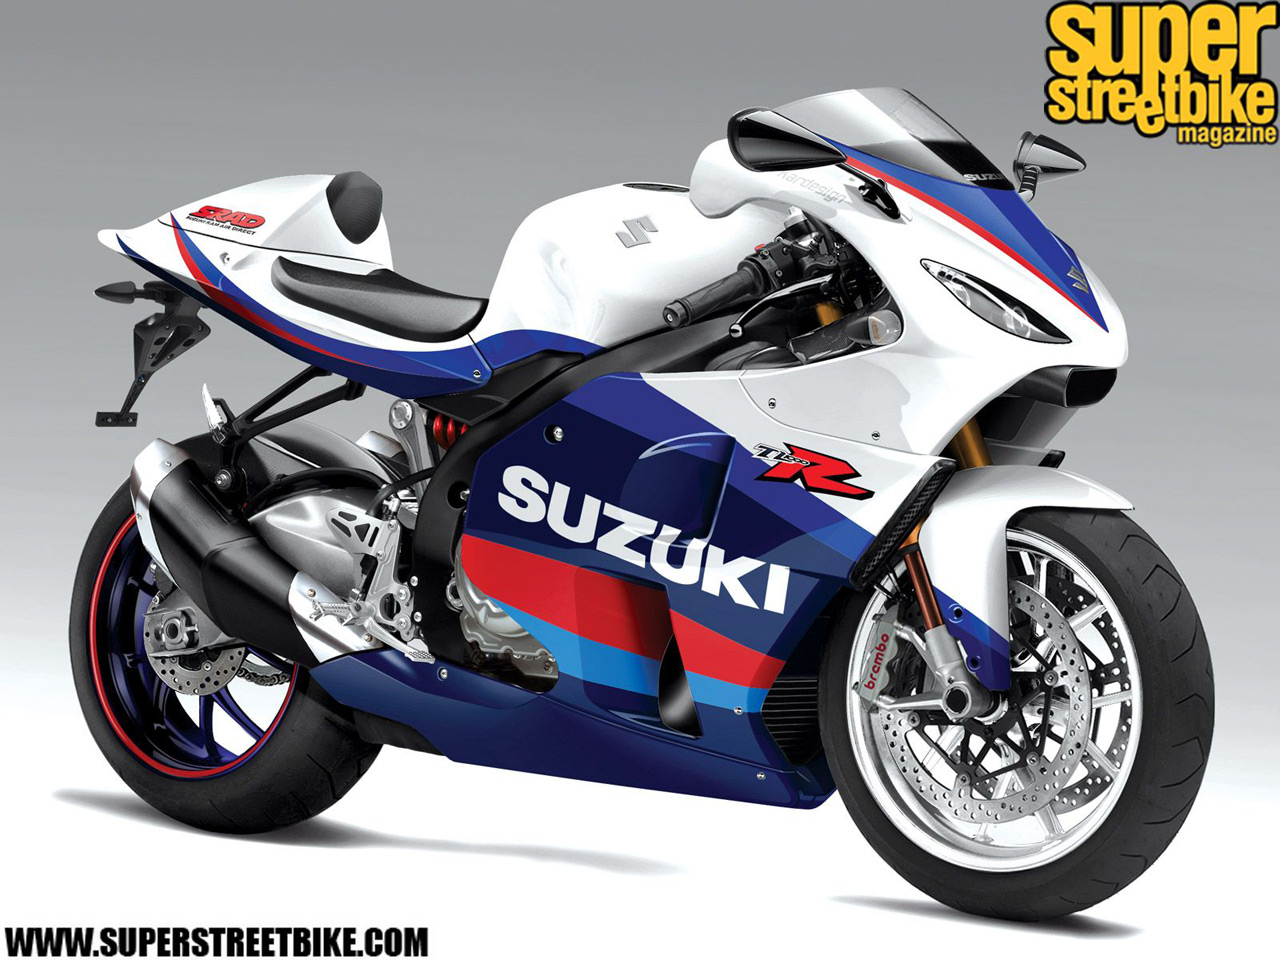 Bike History Report No Cost 02 Suzuki Tl1000r Report this image